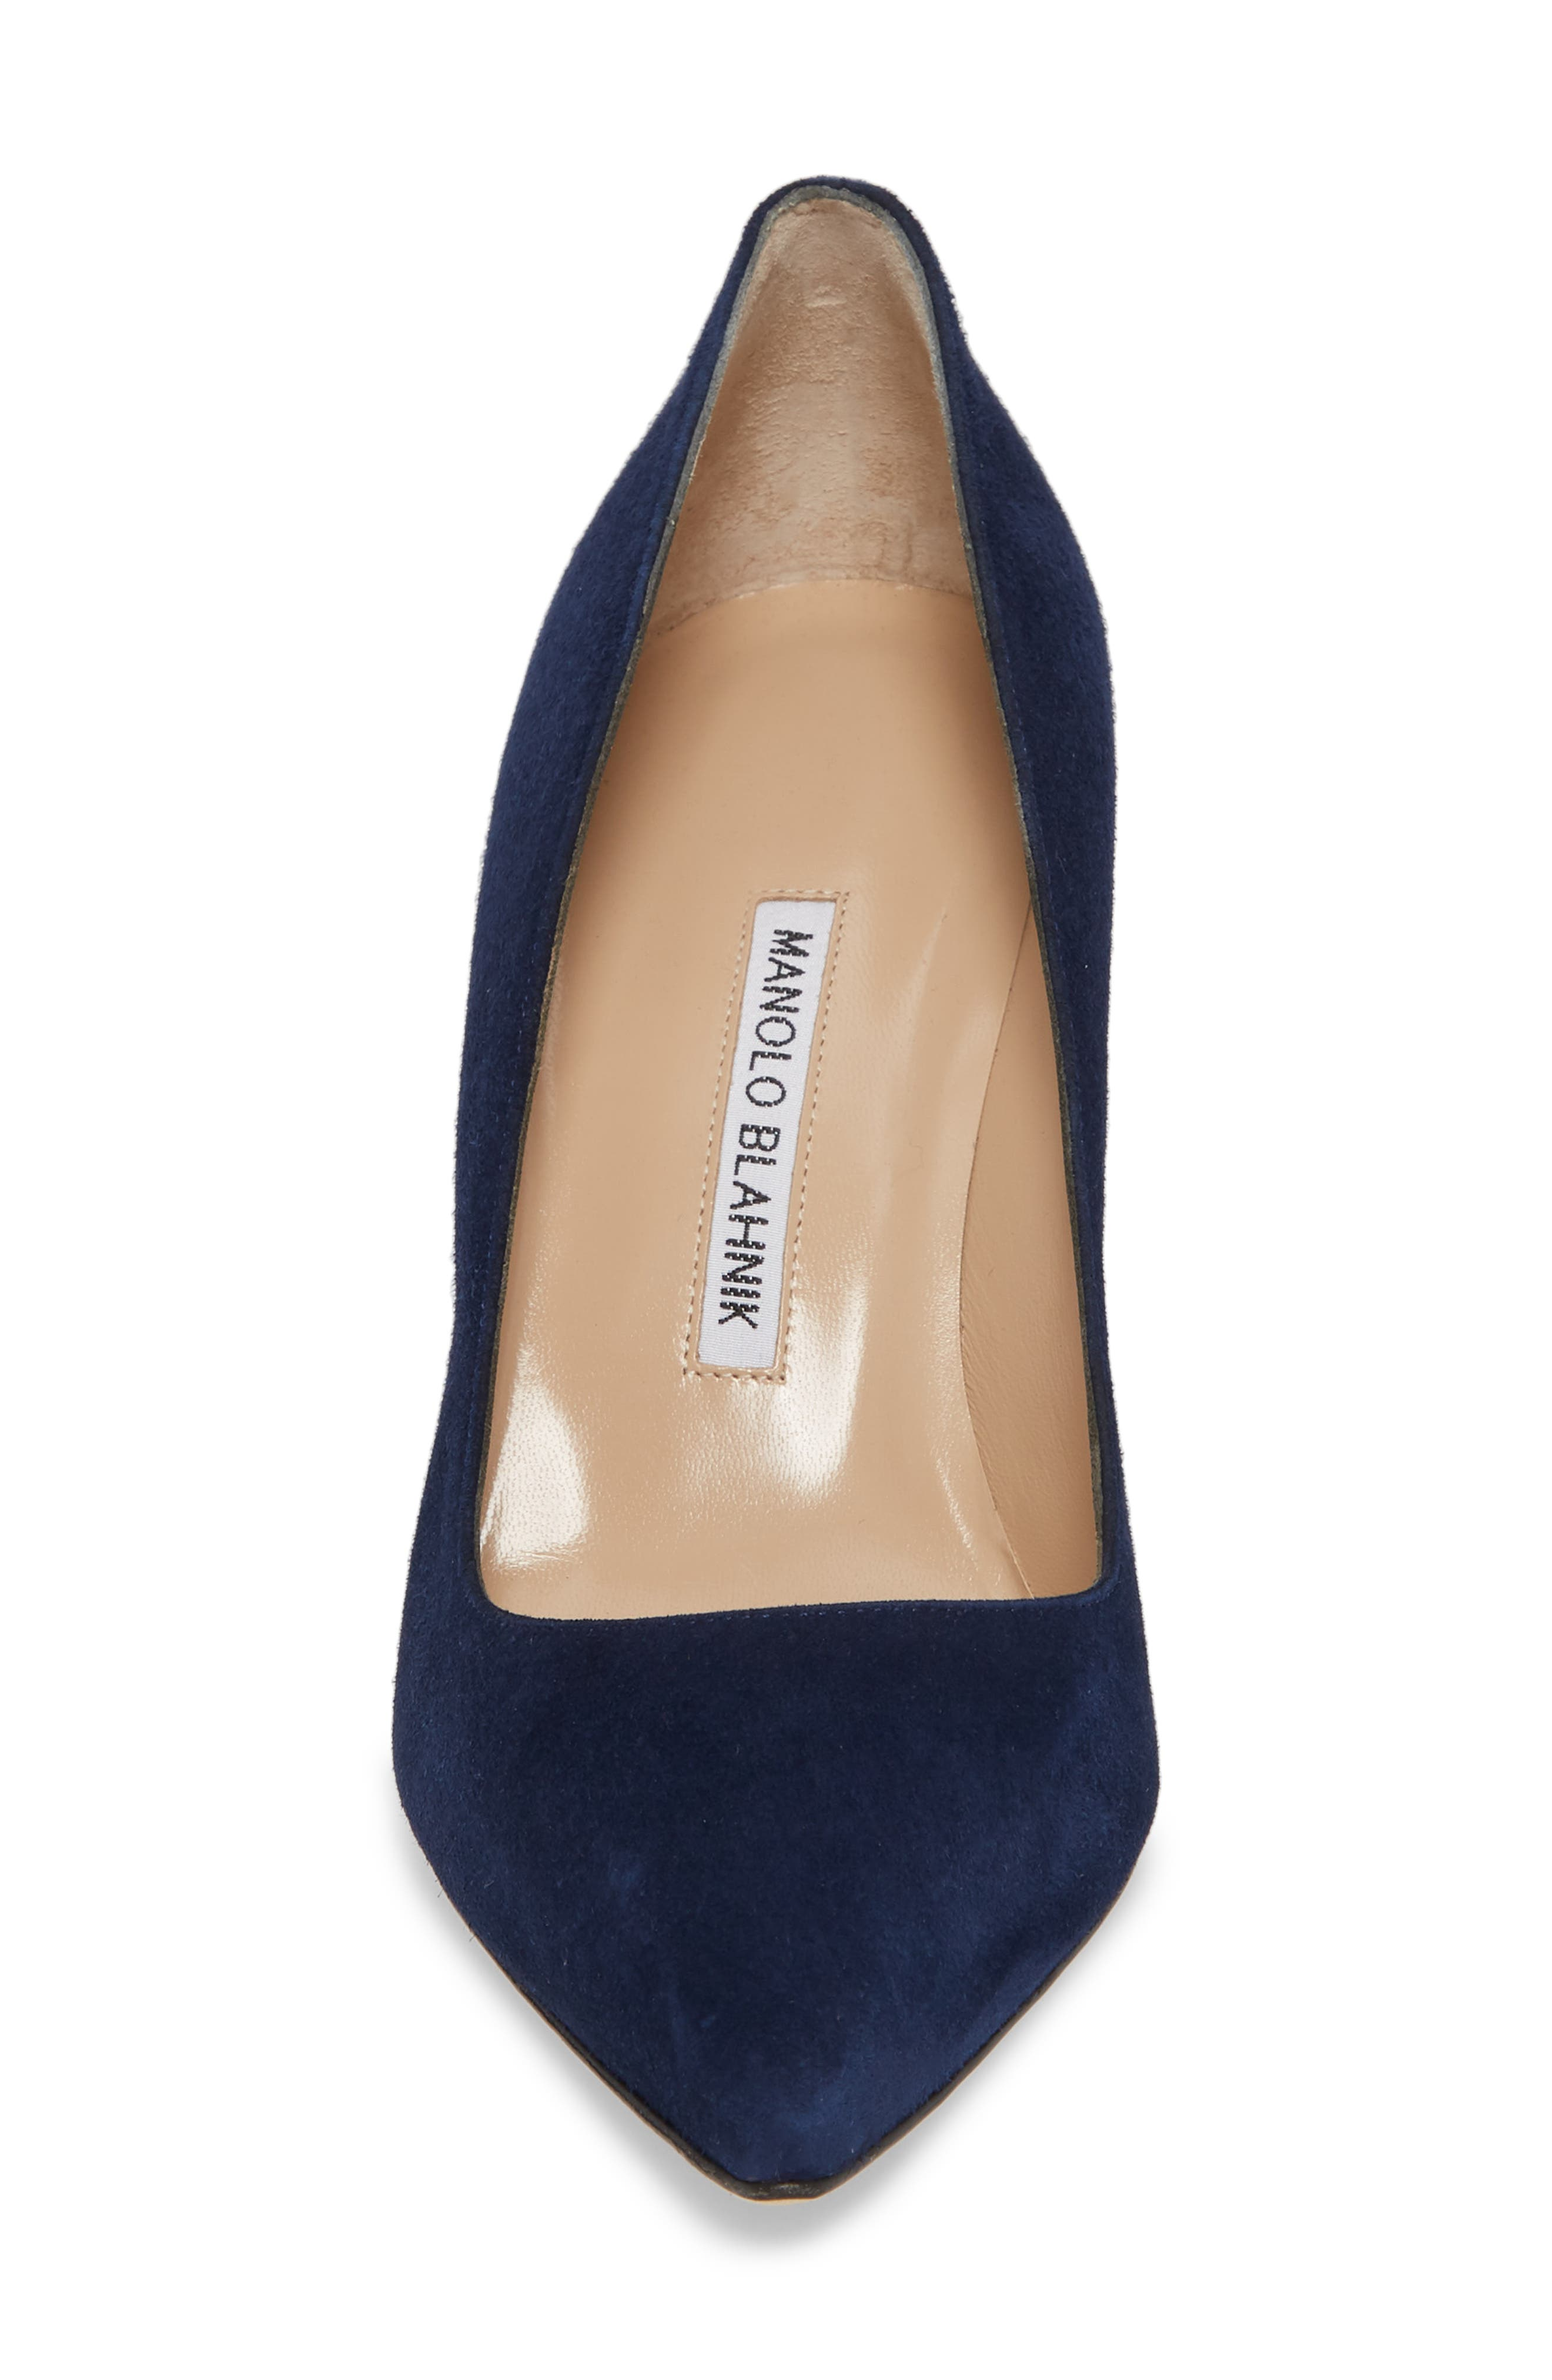 BB Pointy Toe Pump,                             Alternate thumbnail 4, color,                             NAVY SUEDE